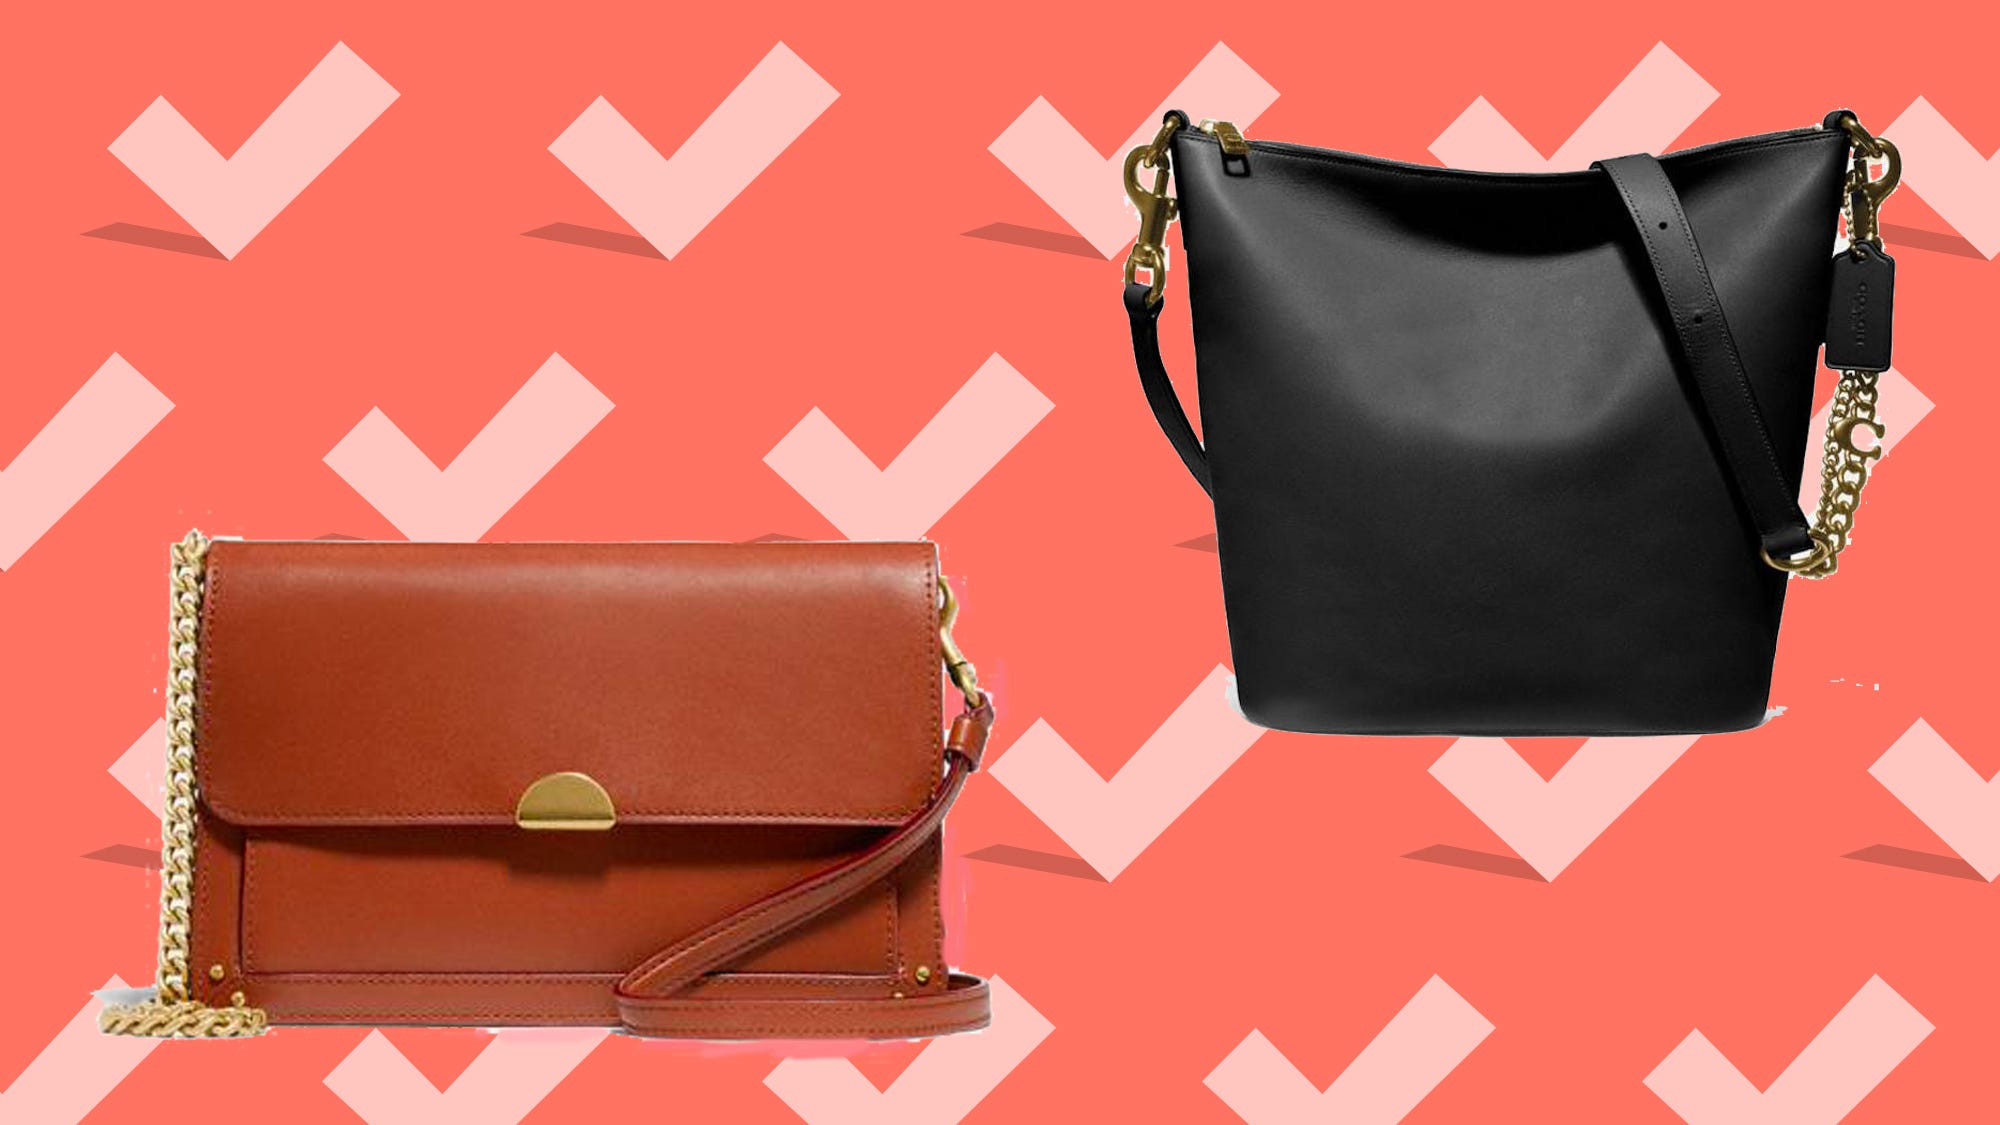 Shop Coach Outlet bags at 70% off right now